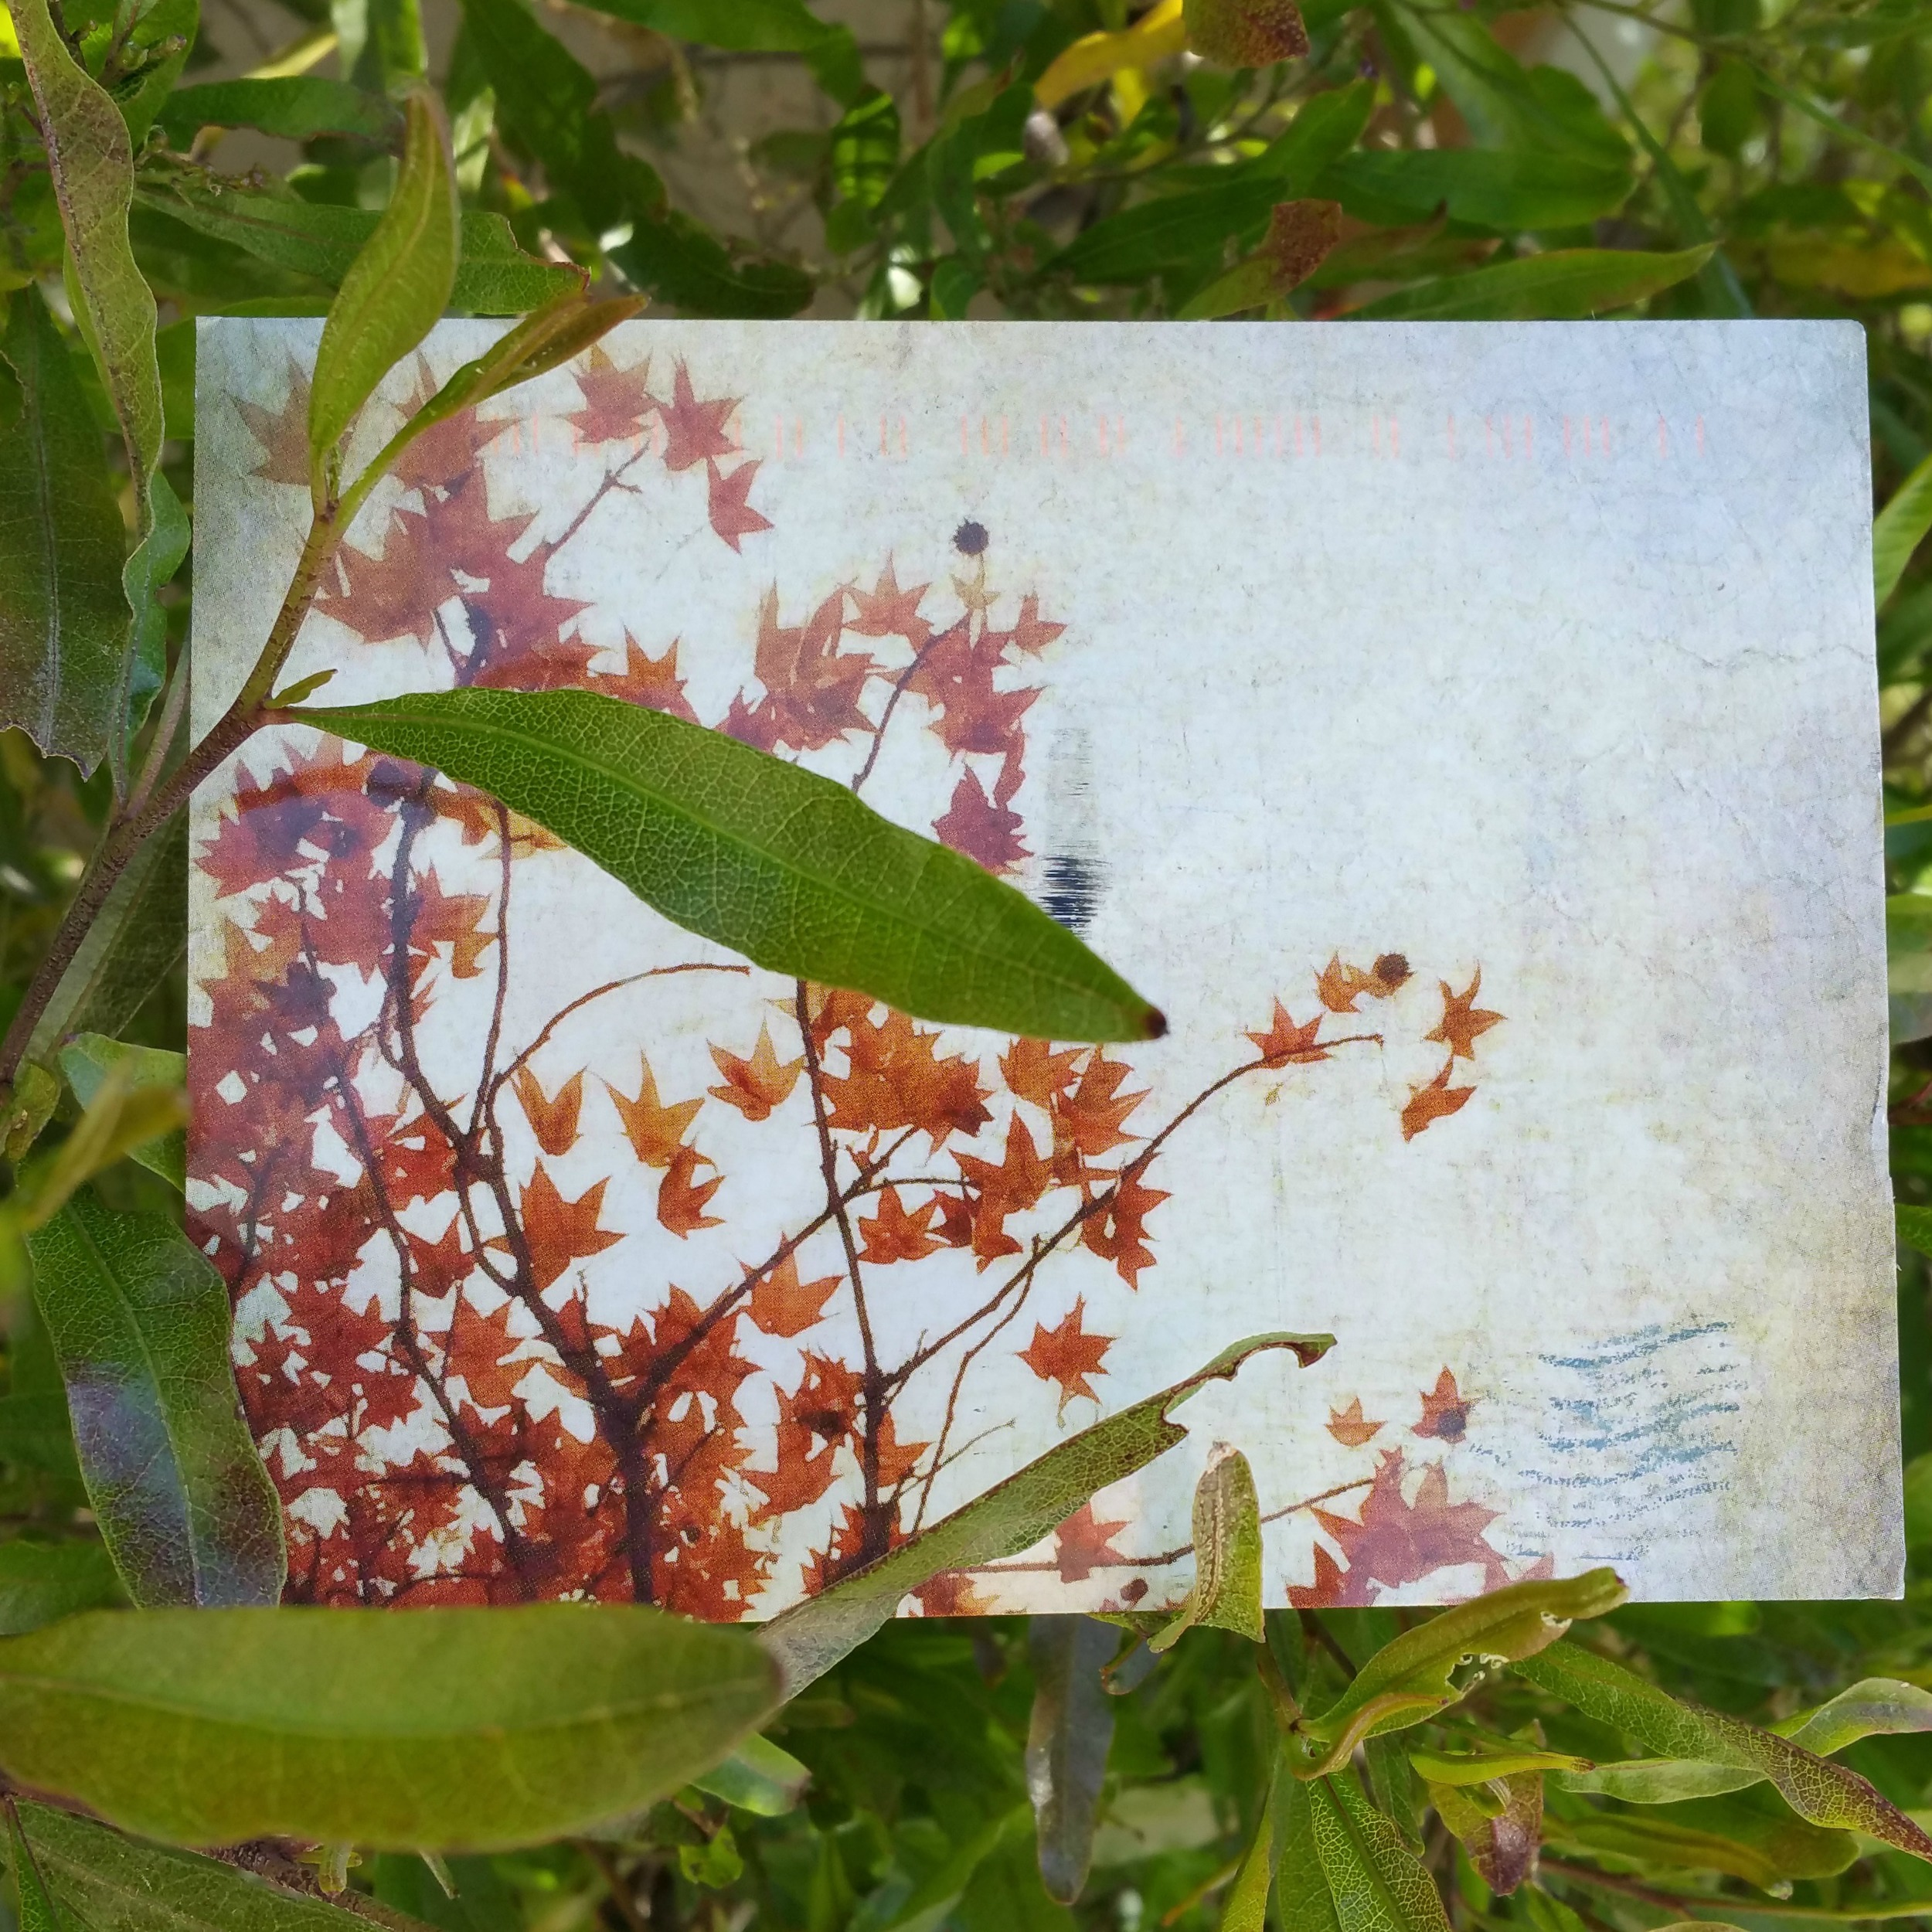 2015 Liberate Your Art Swap card received from  Kat Sloma